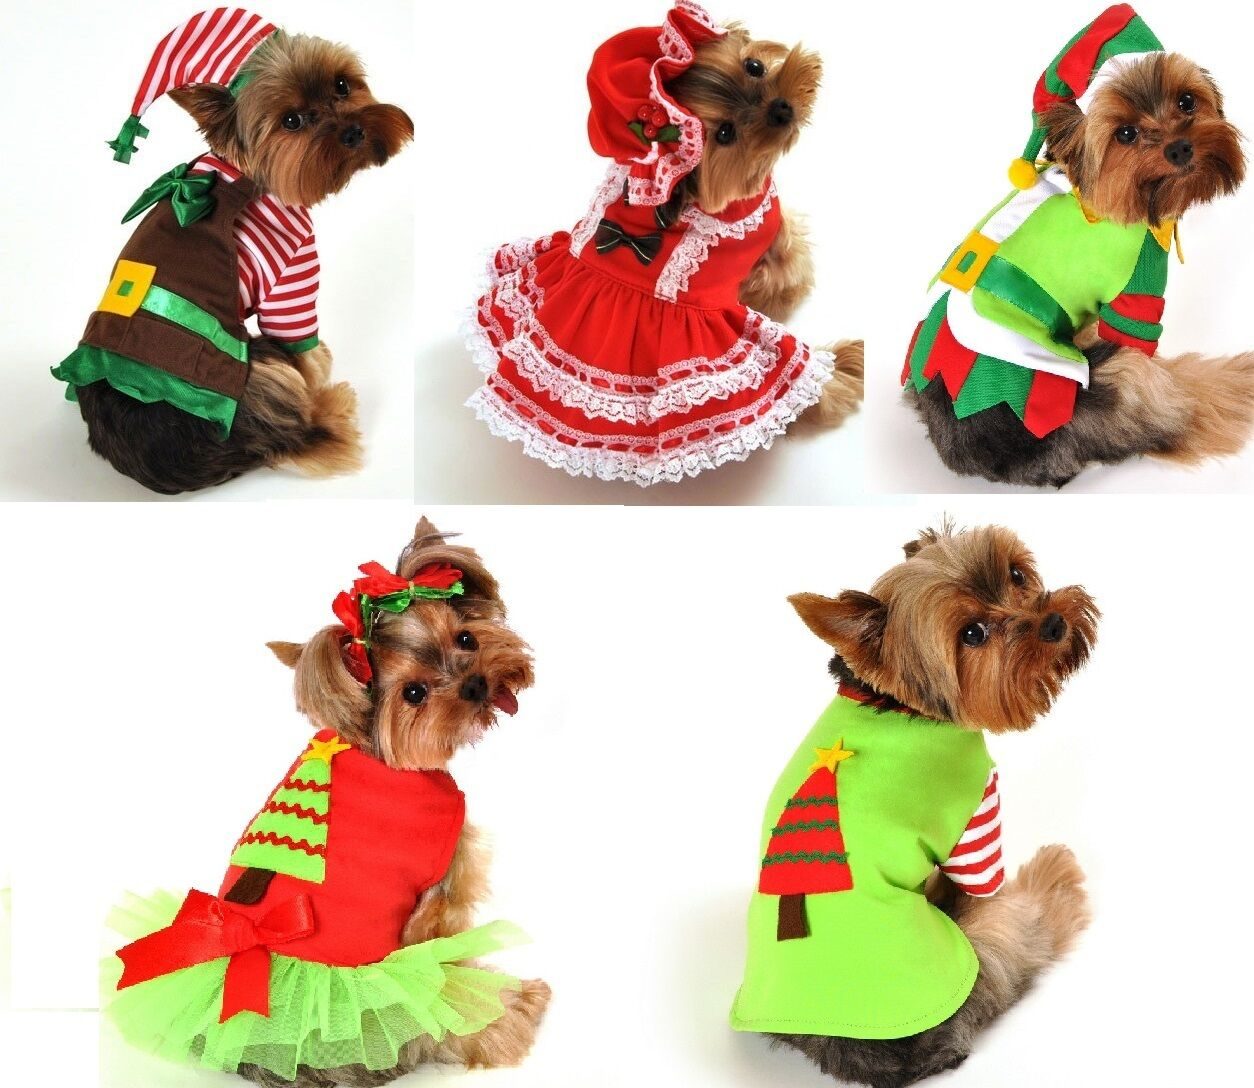 Pet Dog Cat Christmas Santa Elf Gift Fancy Dress Costume Outfit ...